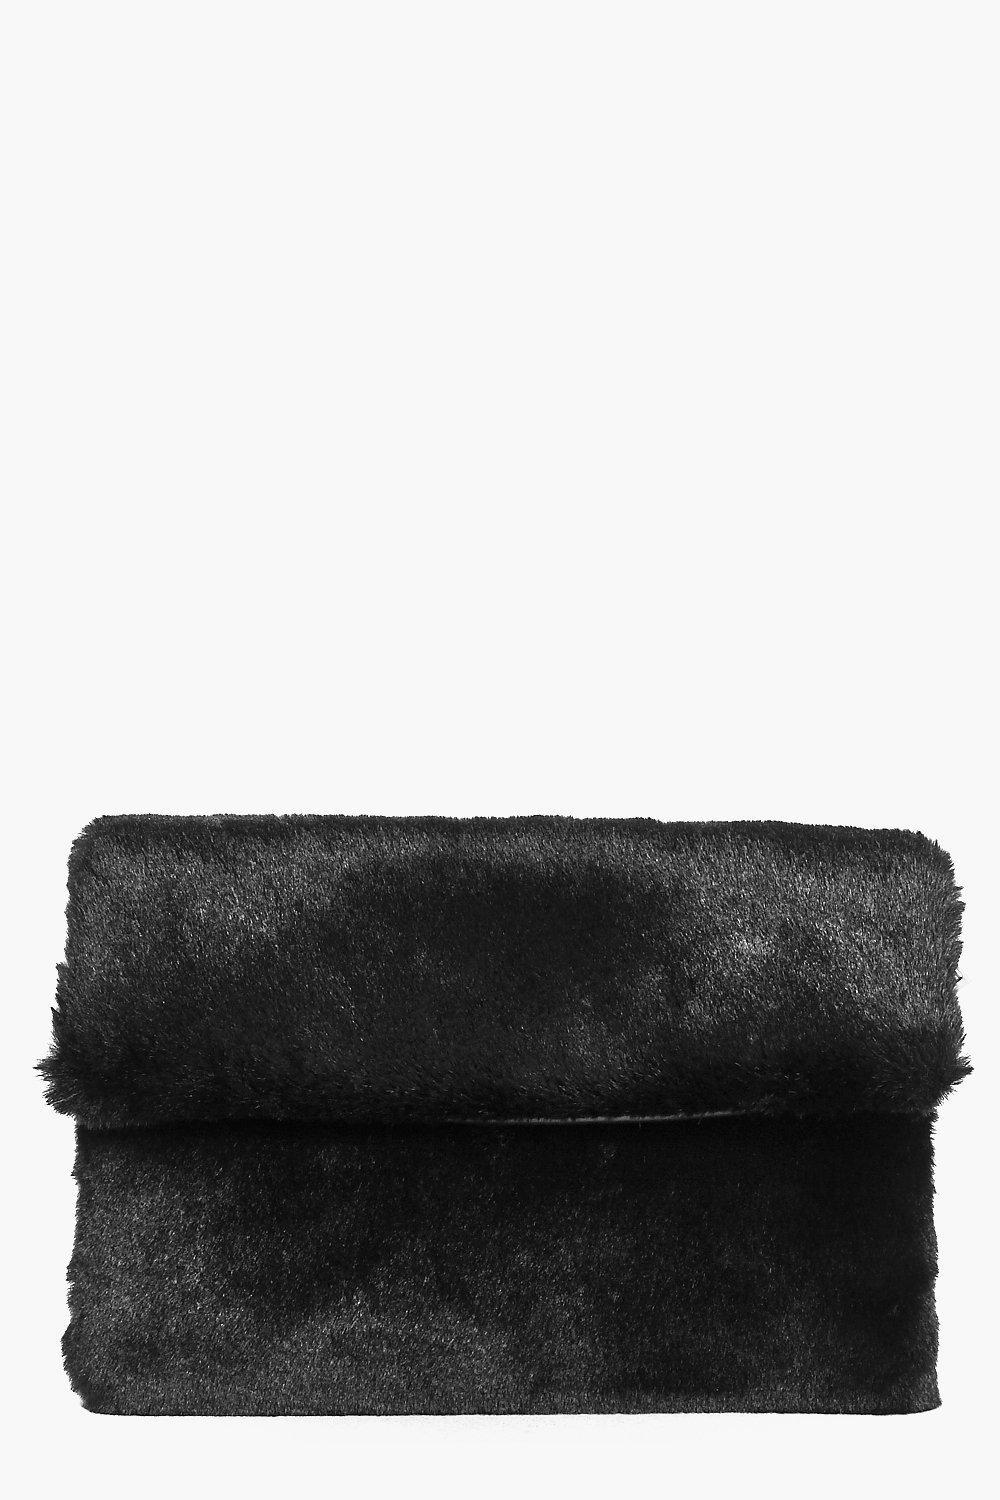 Faux Fur Fold Over Clutch Bag Black - predominant colour: black; occasions: evening, occasion; type of pattern: standard; style: clutch; length: hand carry; size: standard; material: faux fur; pattern: plain; finish: plain; season: a/w 2016; wardrobe: event